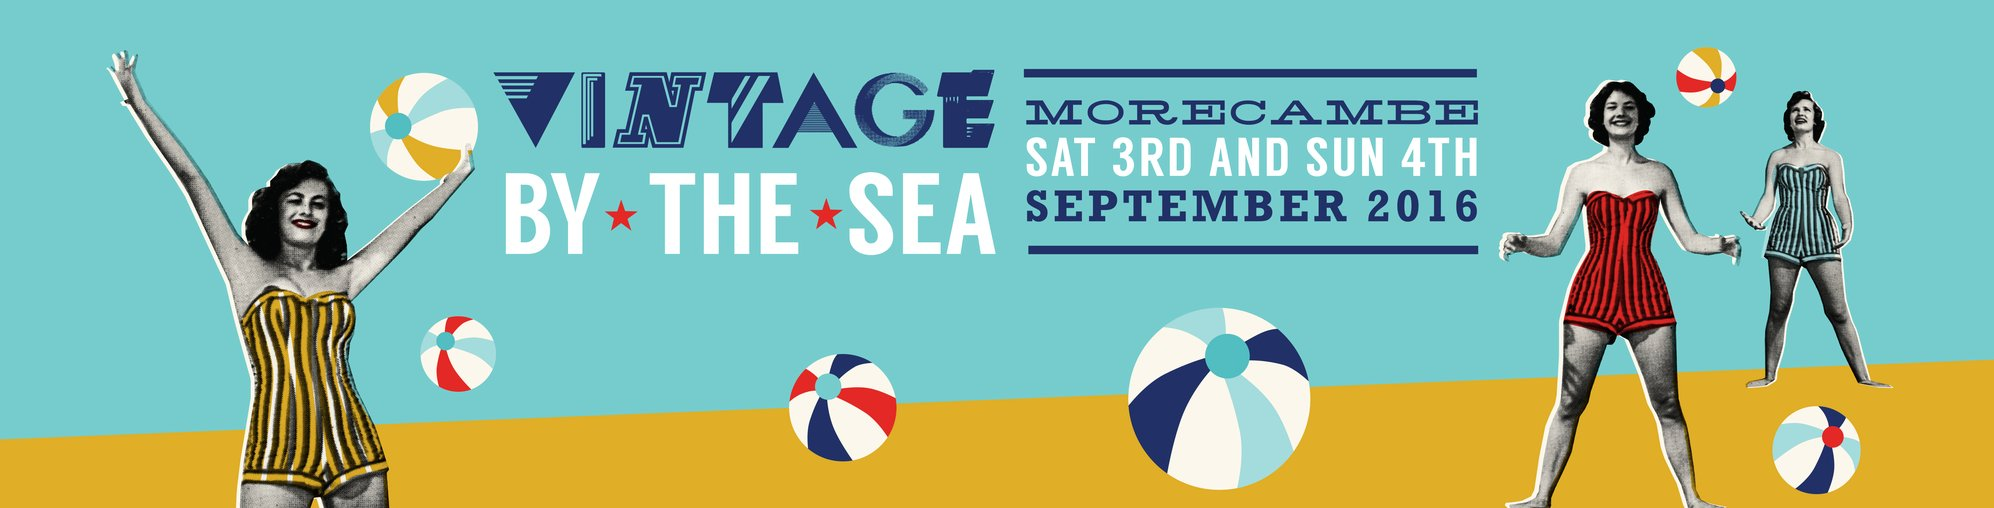 vintage by the sea morecambe cover photo